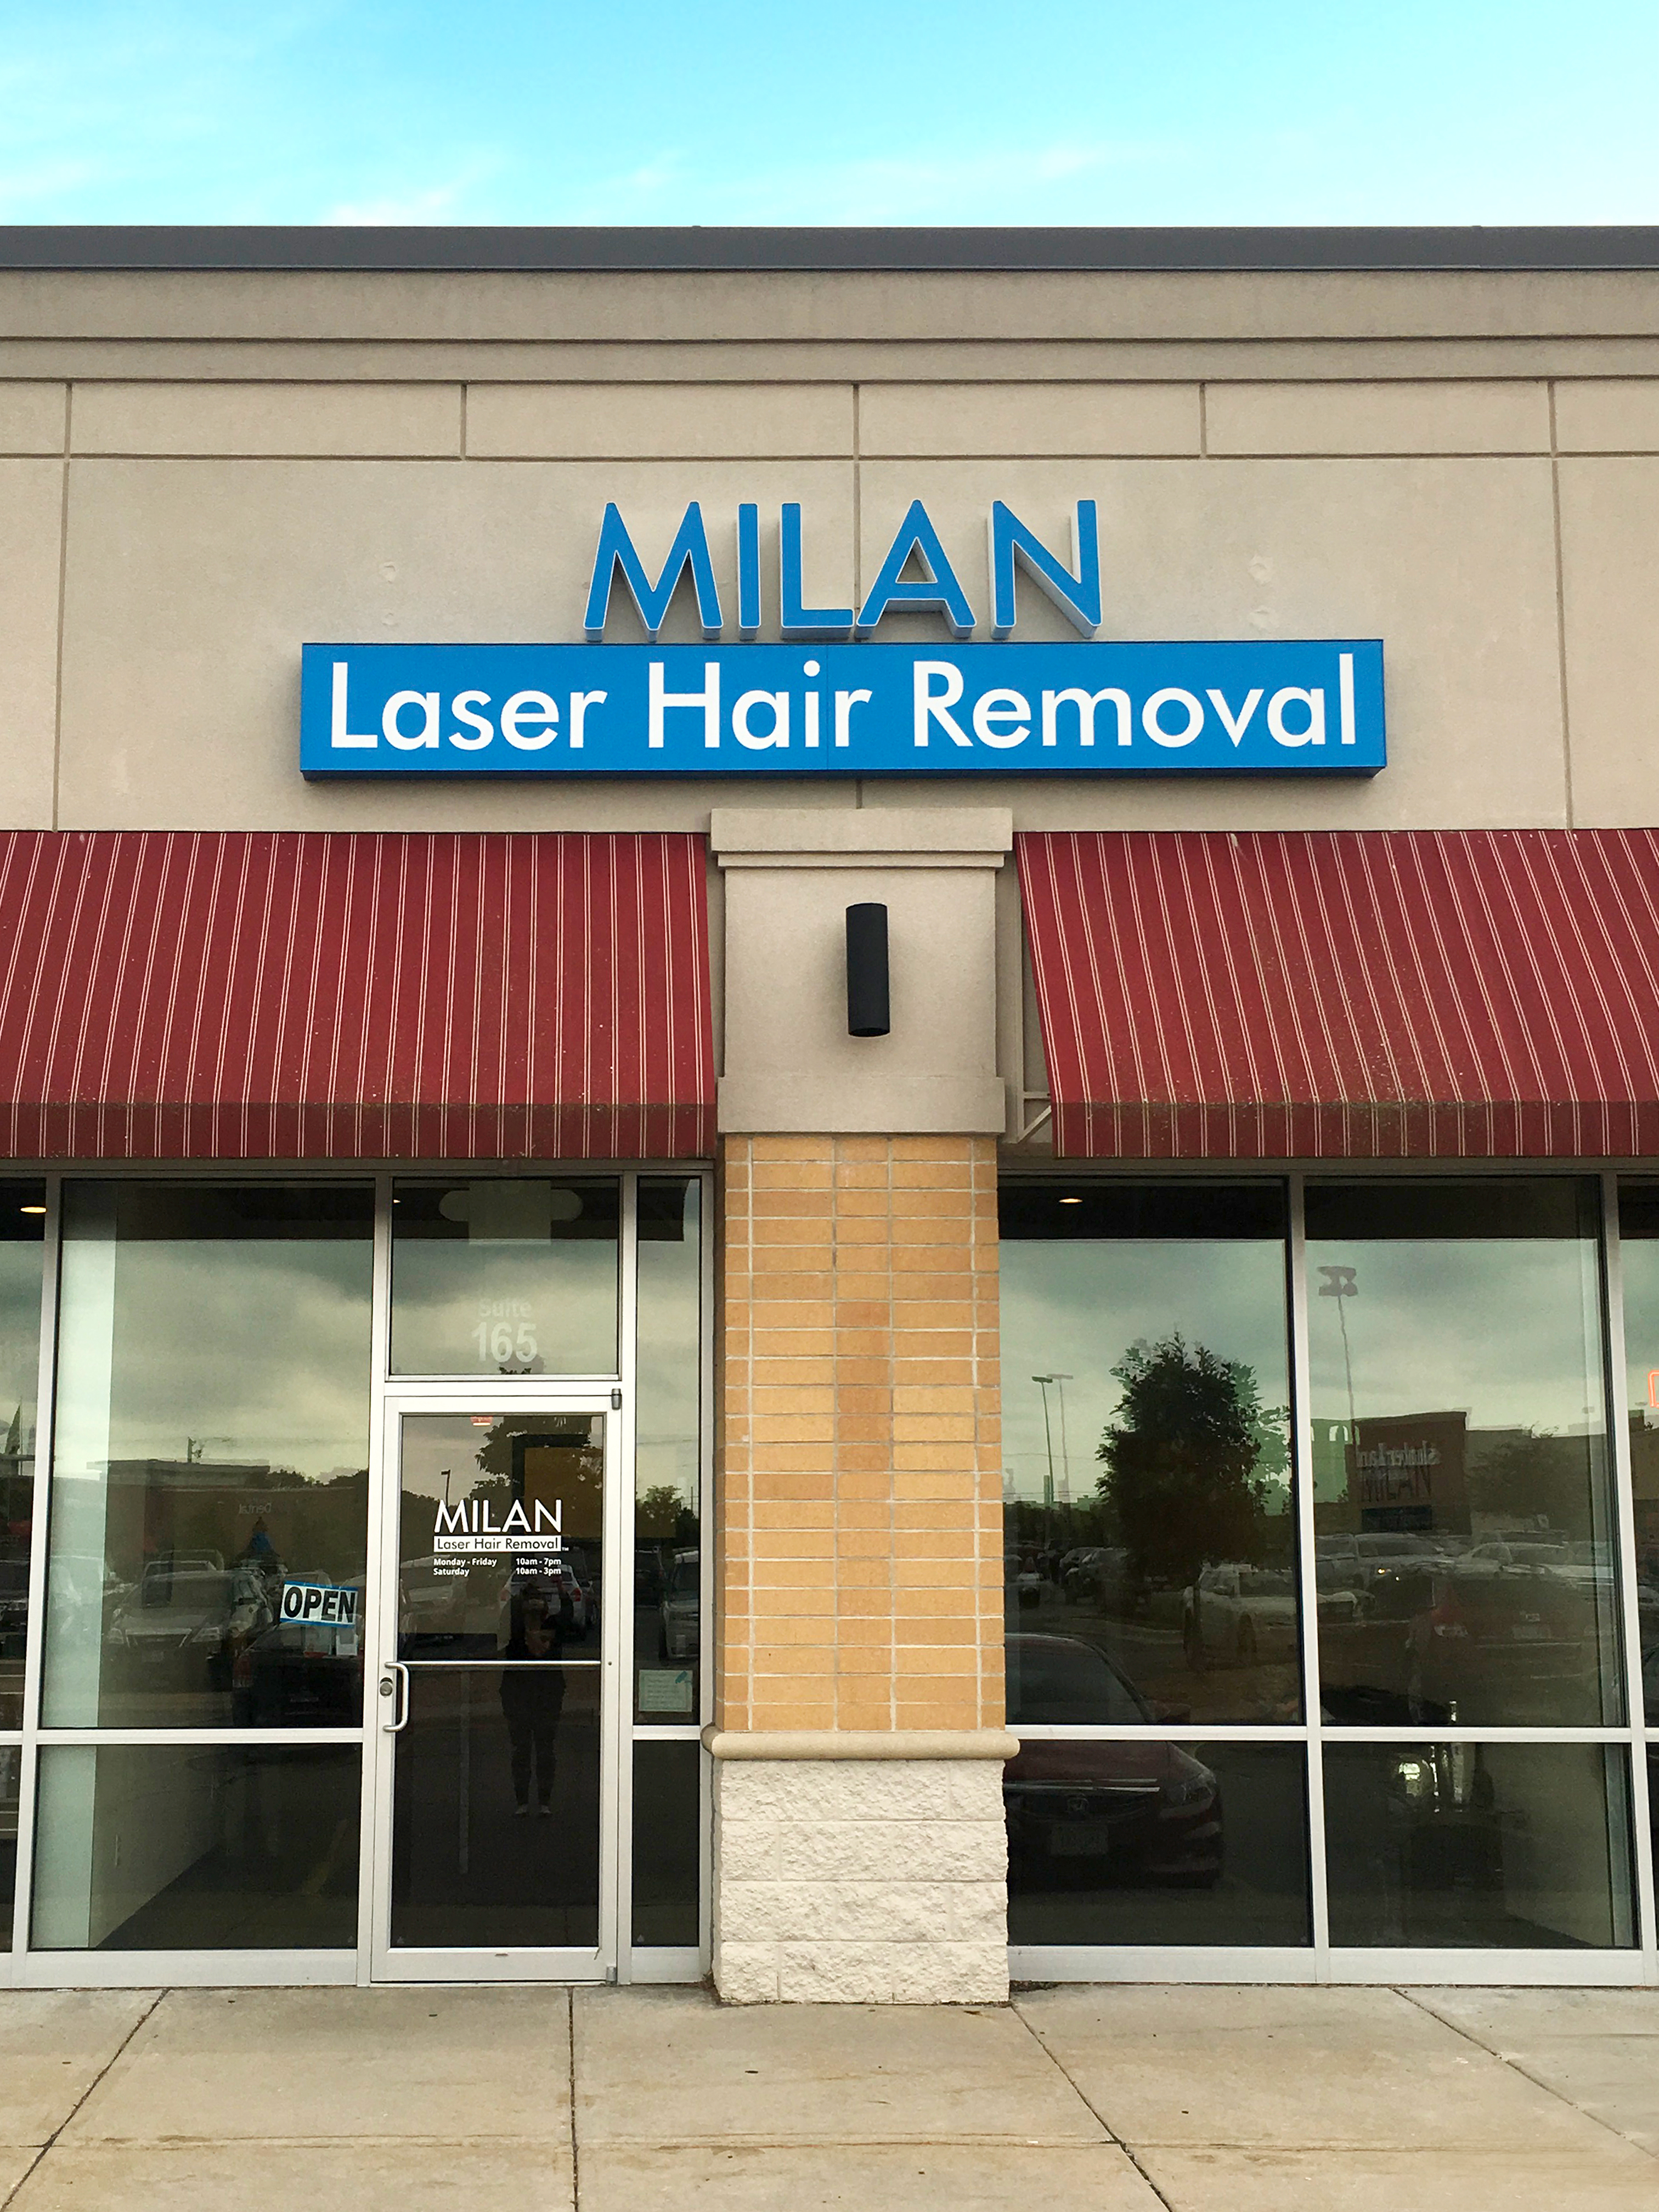 Laser Hair Removal In Janesville Wi Milan Laser Hair Removal